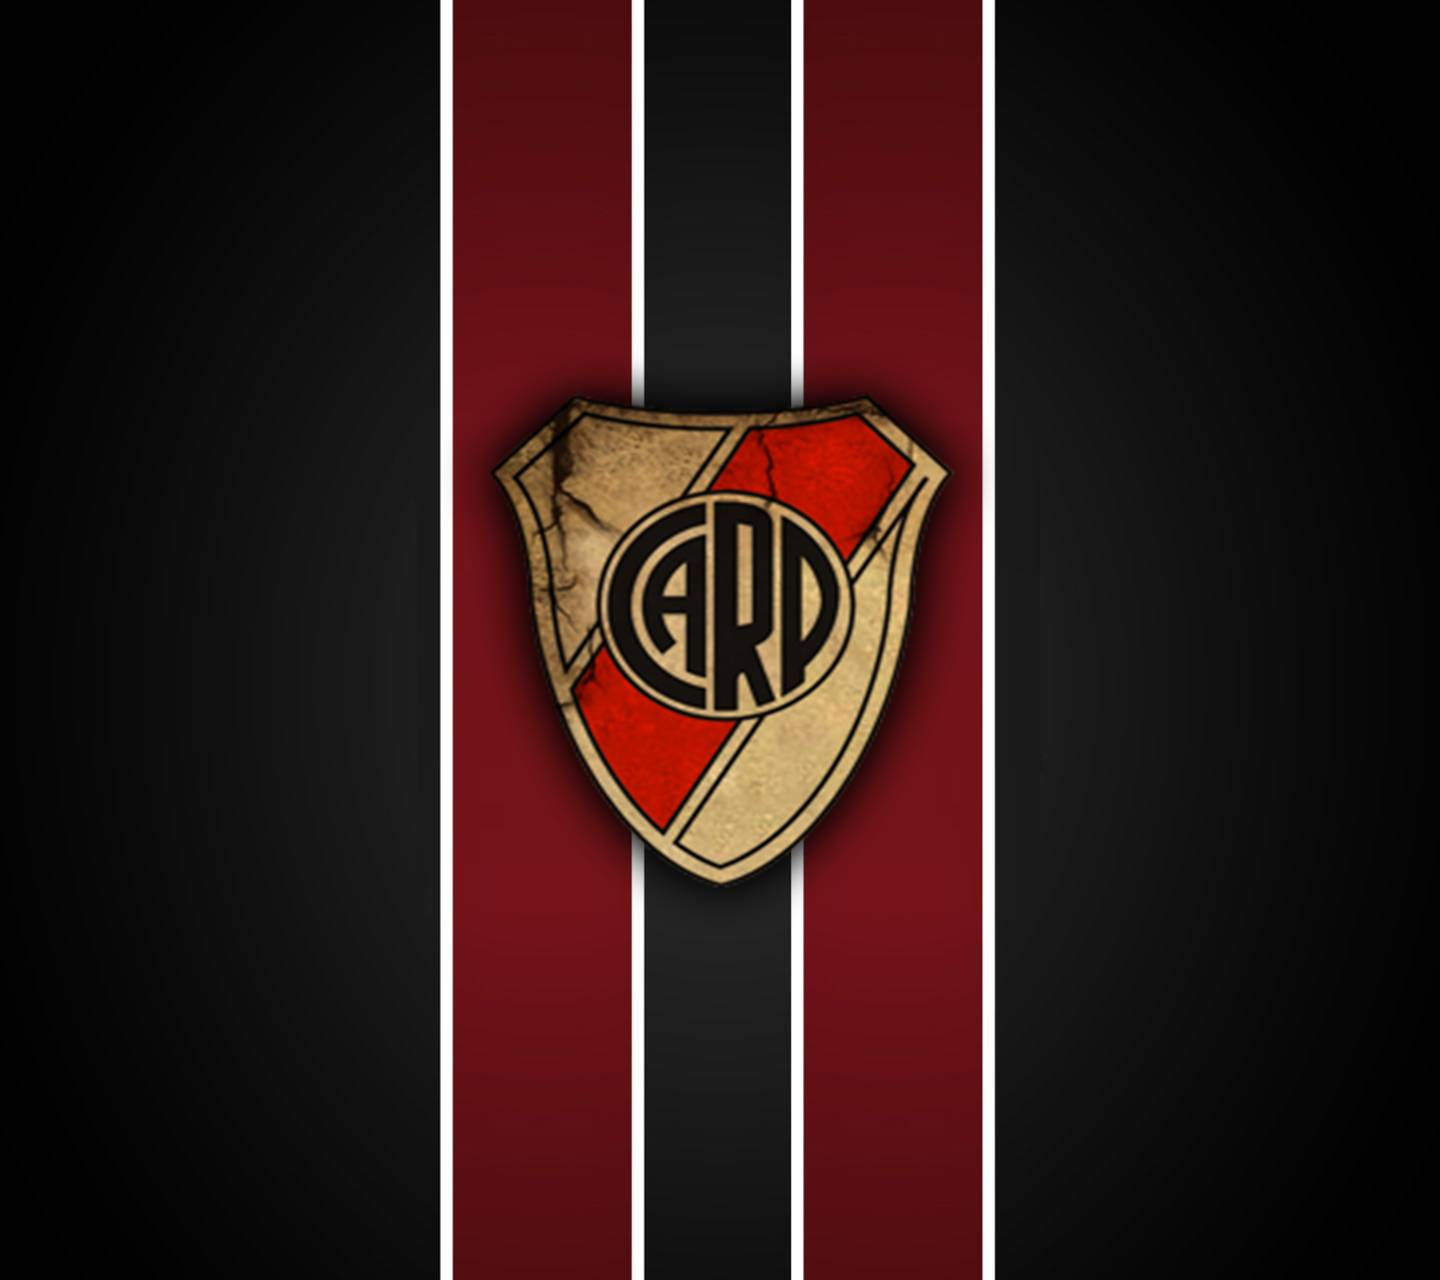 River Plate Wallpaper By Matiimayo F4 Free On Zedge